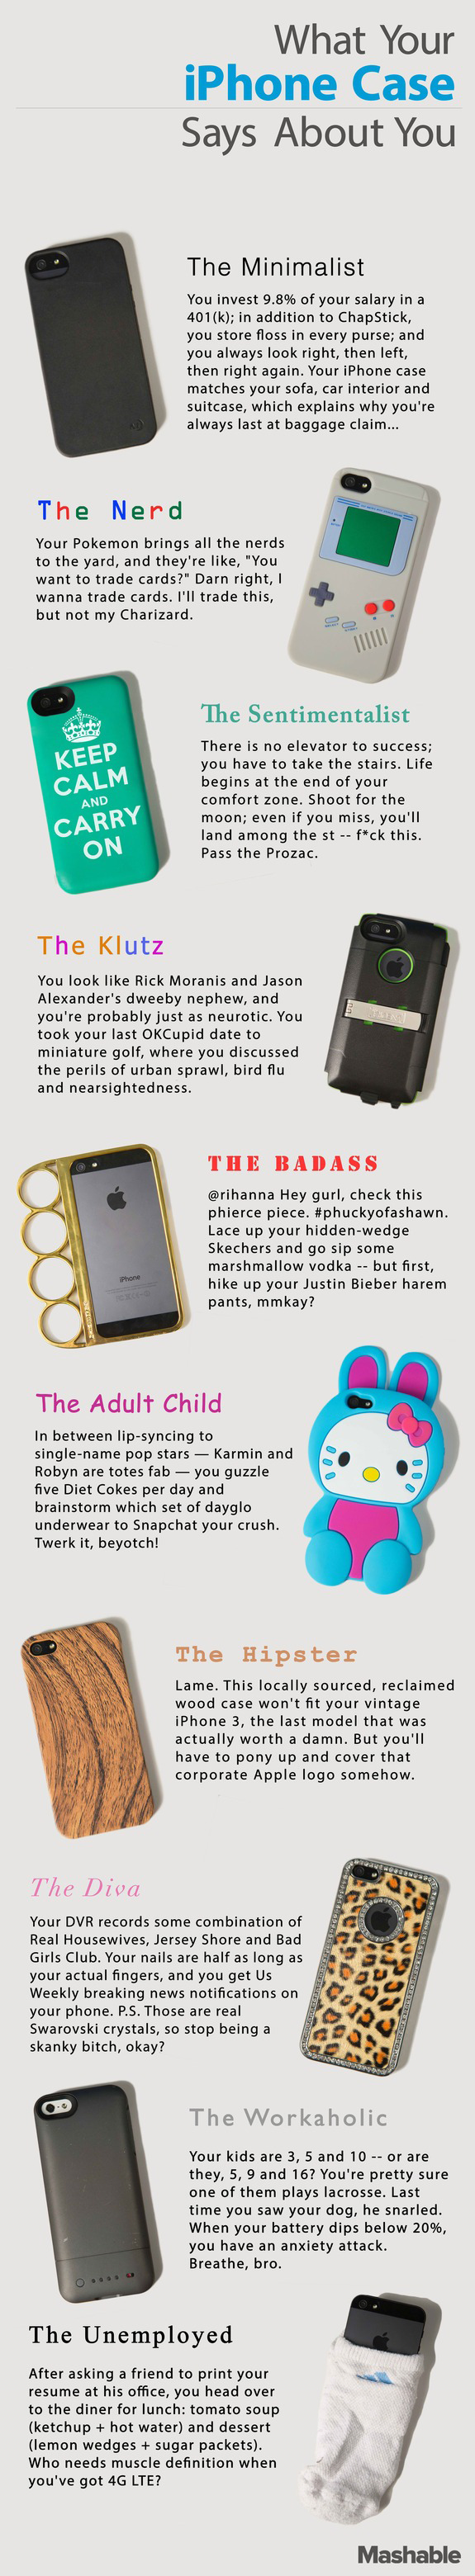 iphone-case-infographic-1